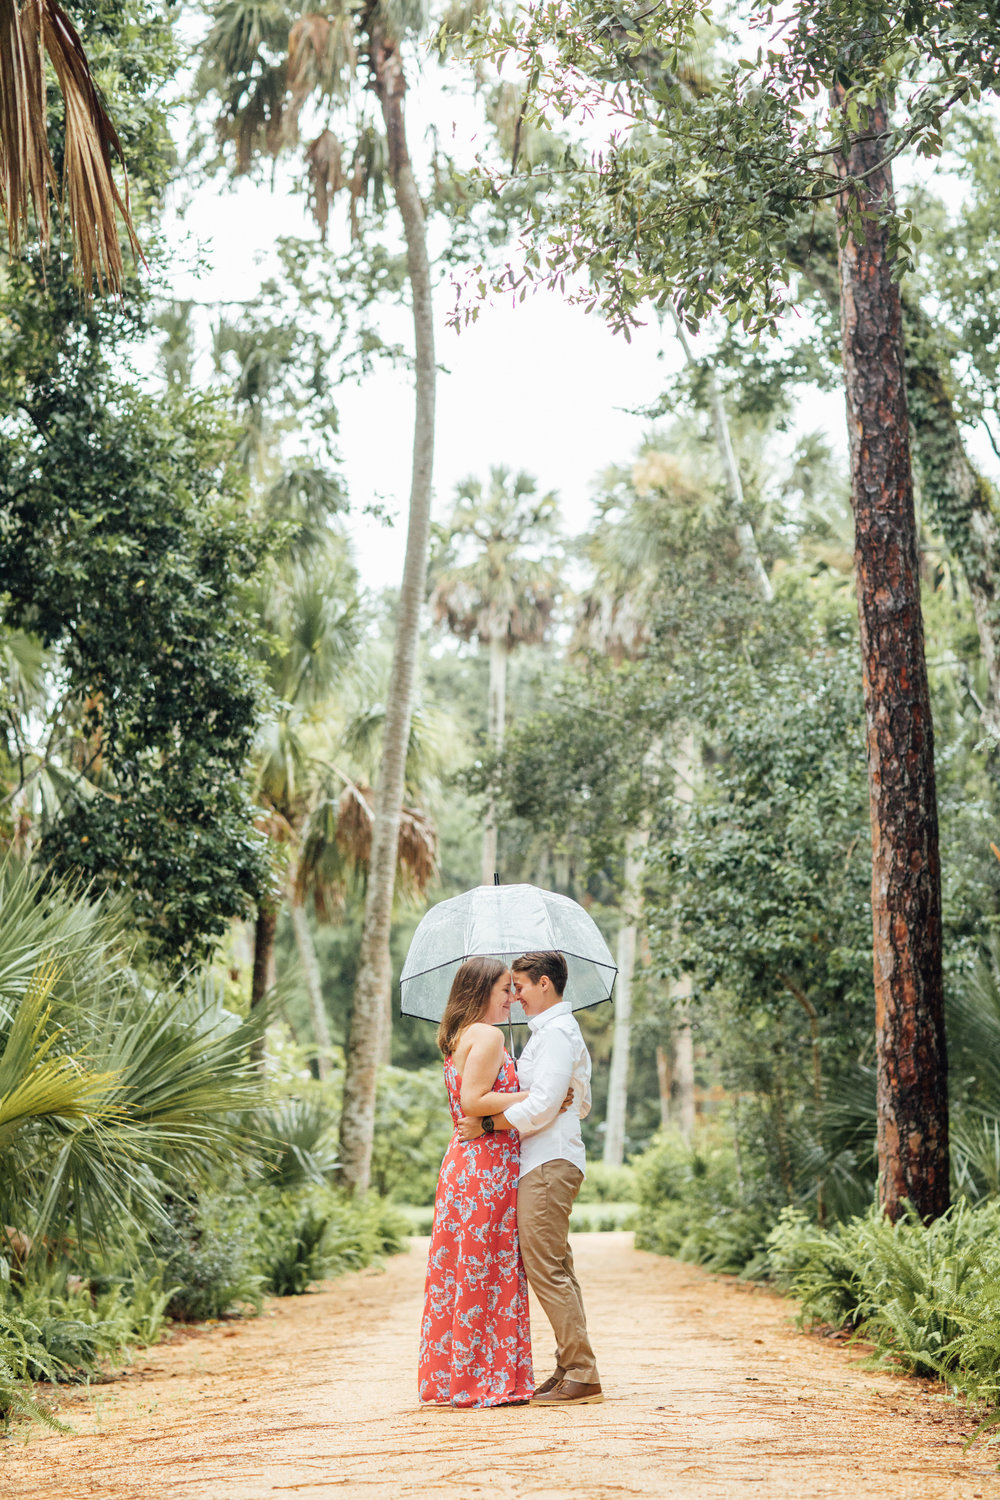 Orlando Natural Forest State Park Engagement Photos- Romantic LGBT Engaged Couples photos30.jpg